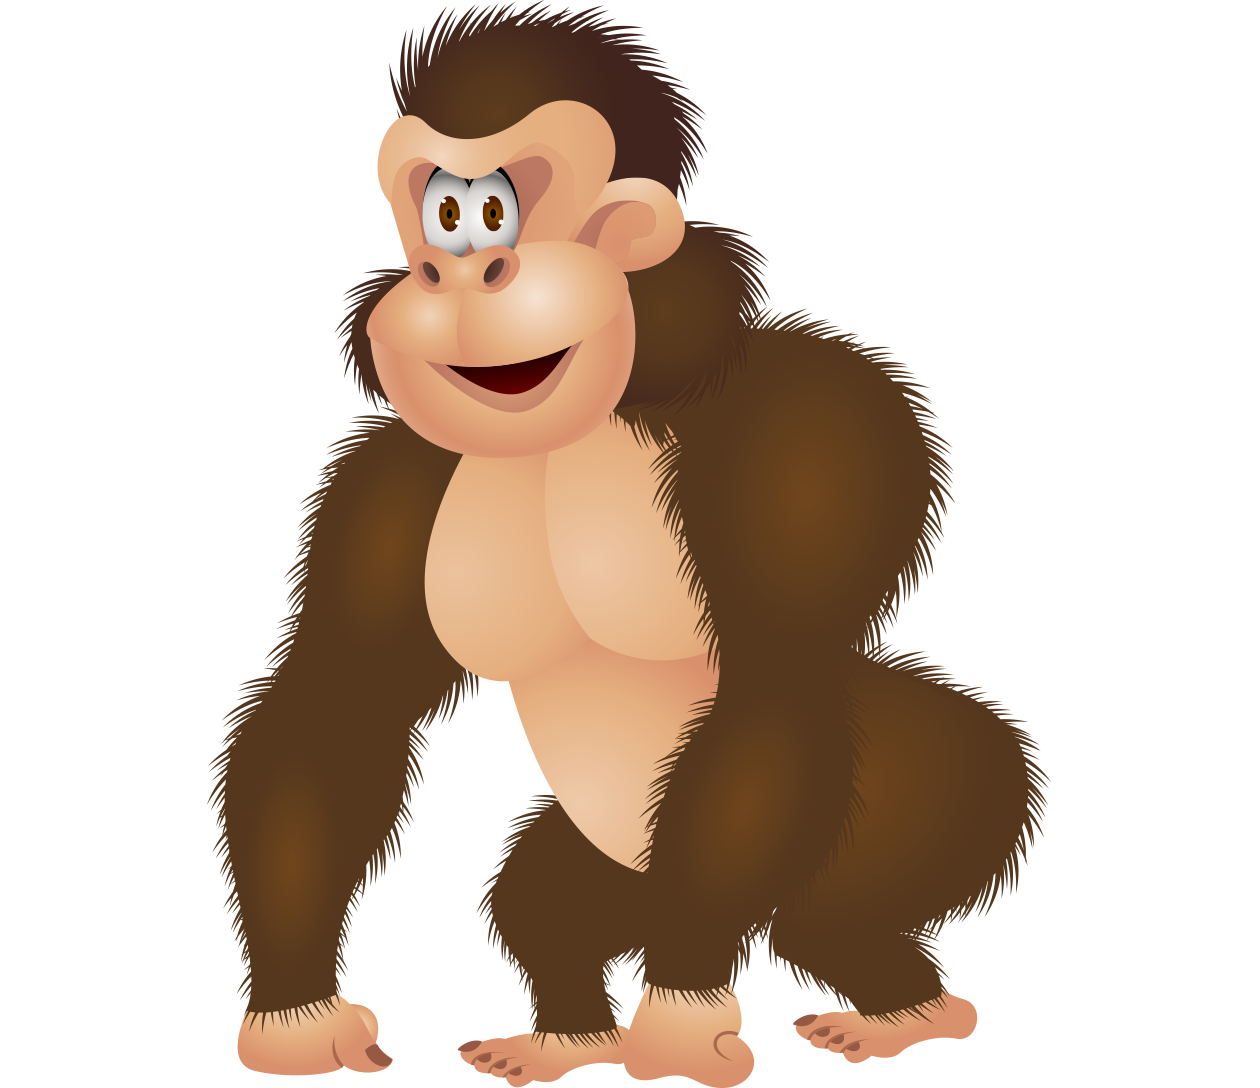 png freeuse download Gorilla Ape King Kong Illustration